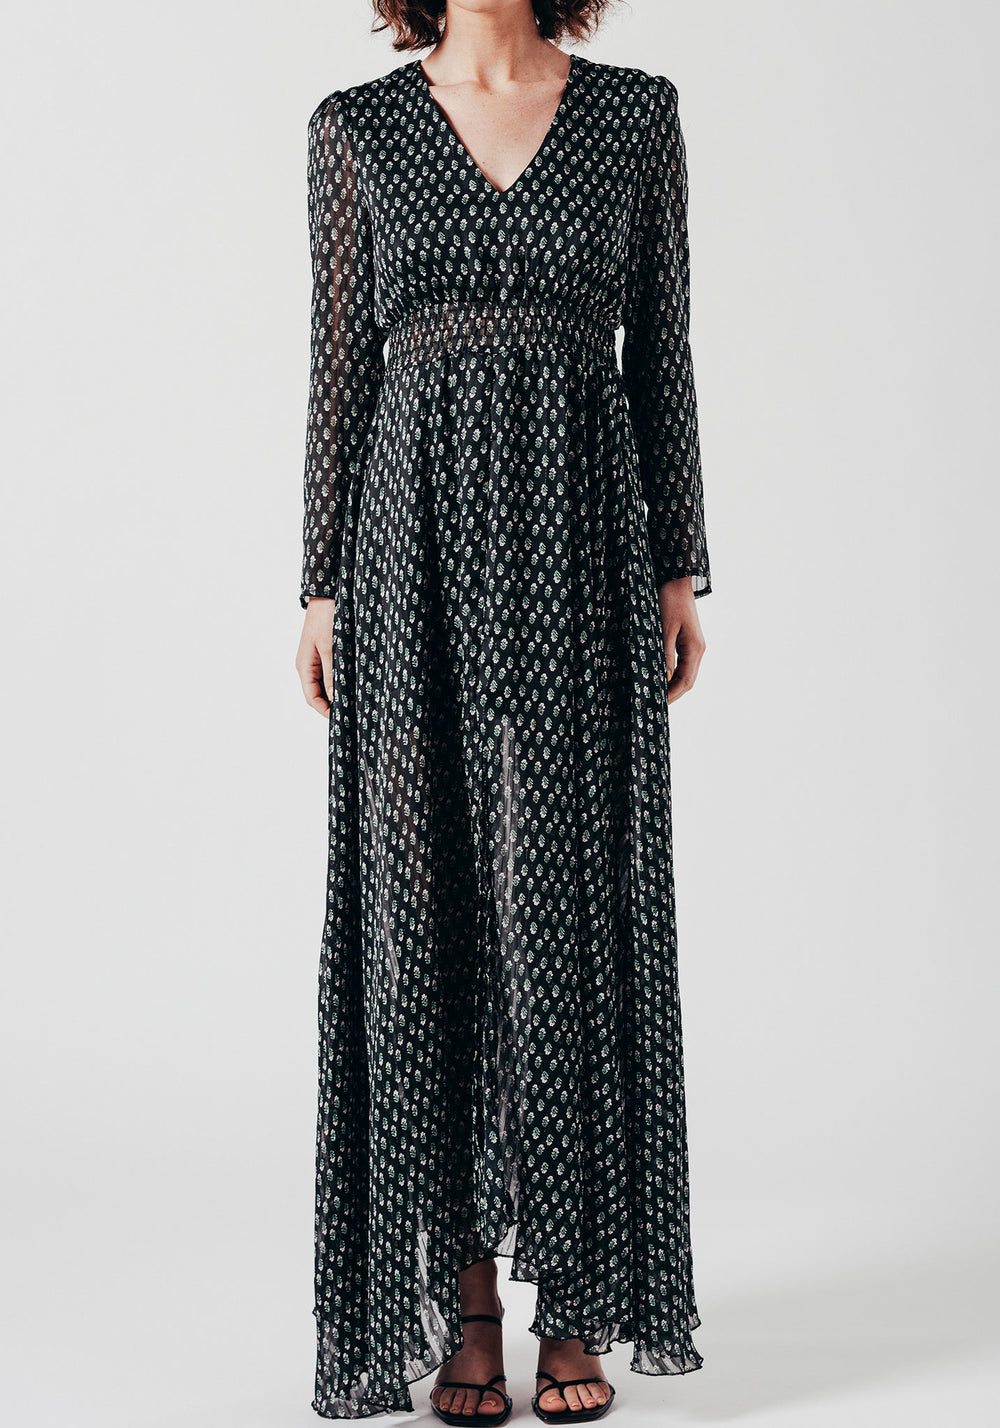 Chiffon Long Sleeve Maxi Dress with Black Ditsy Print